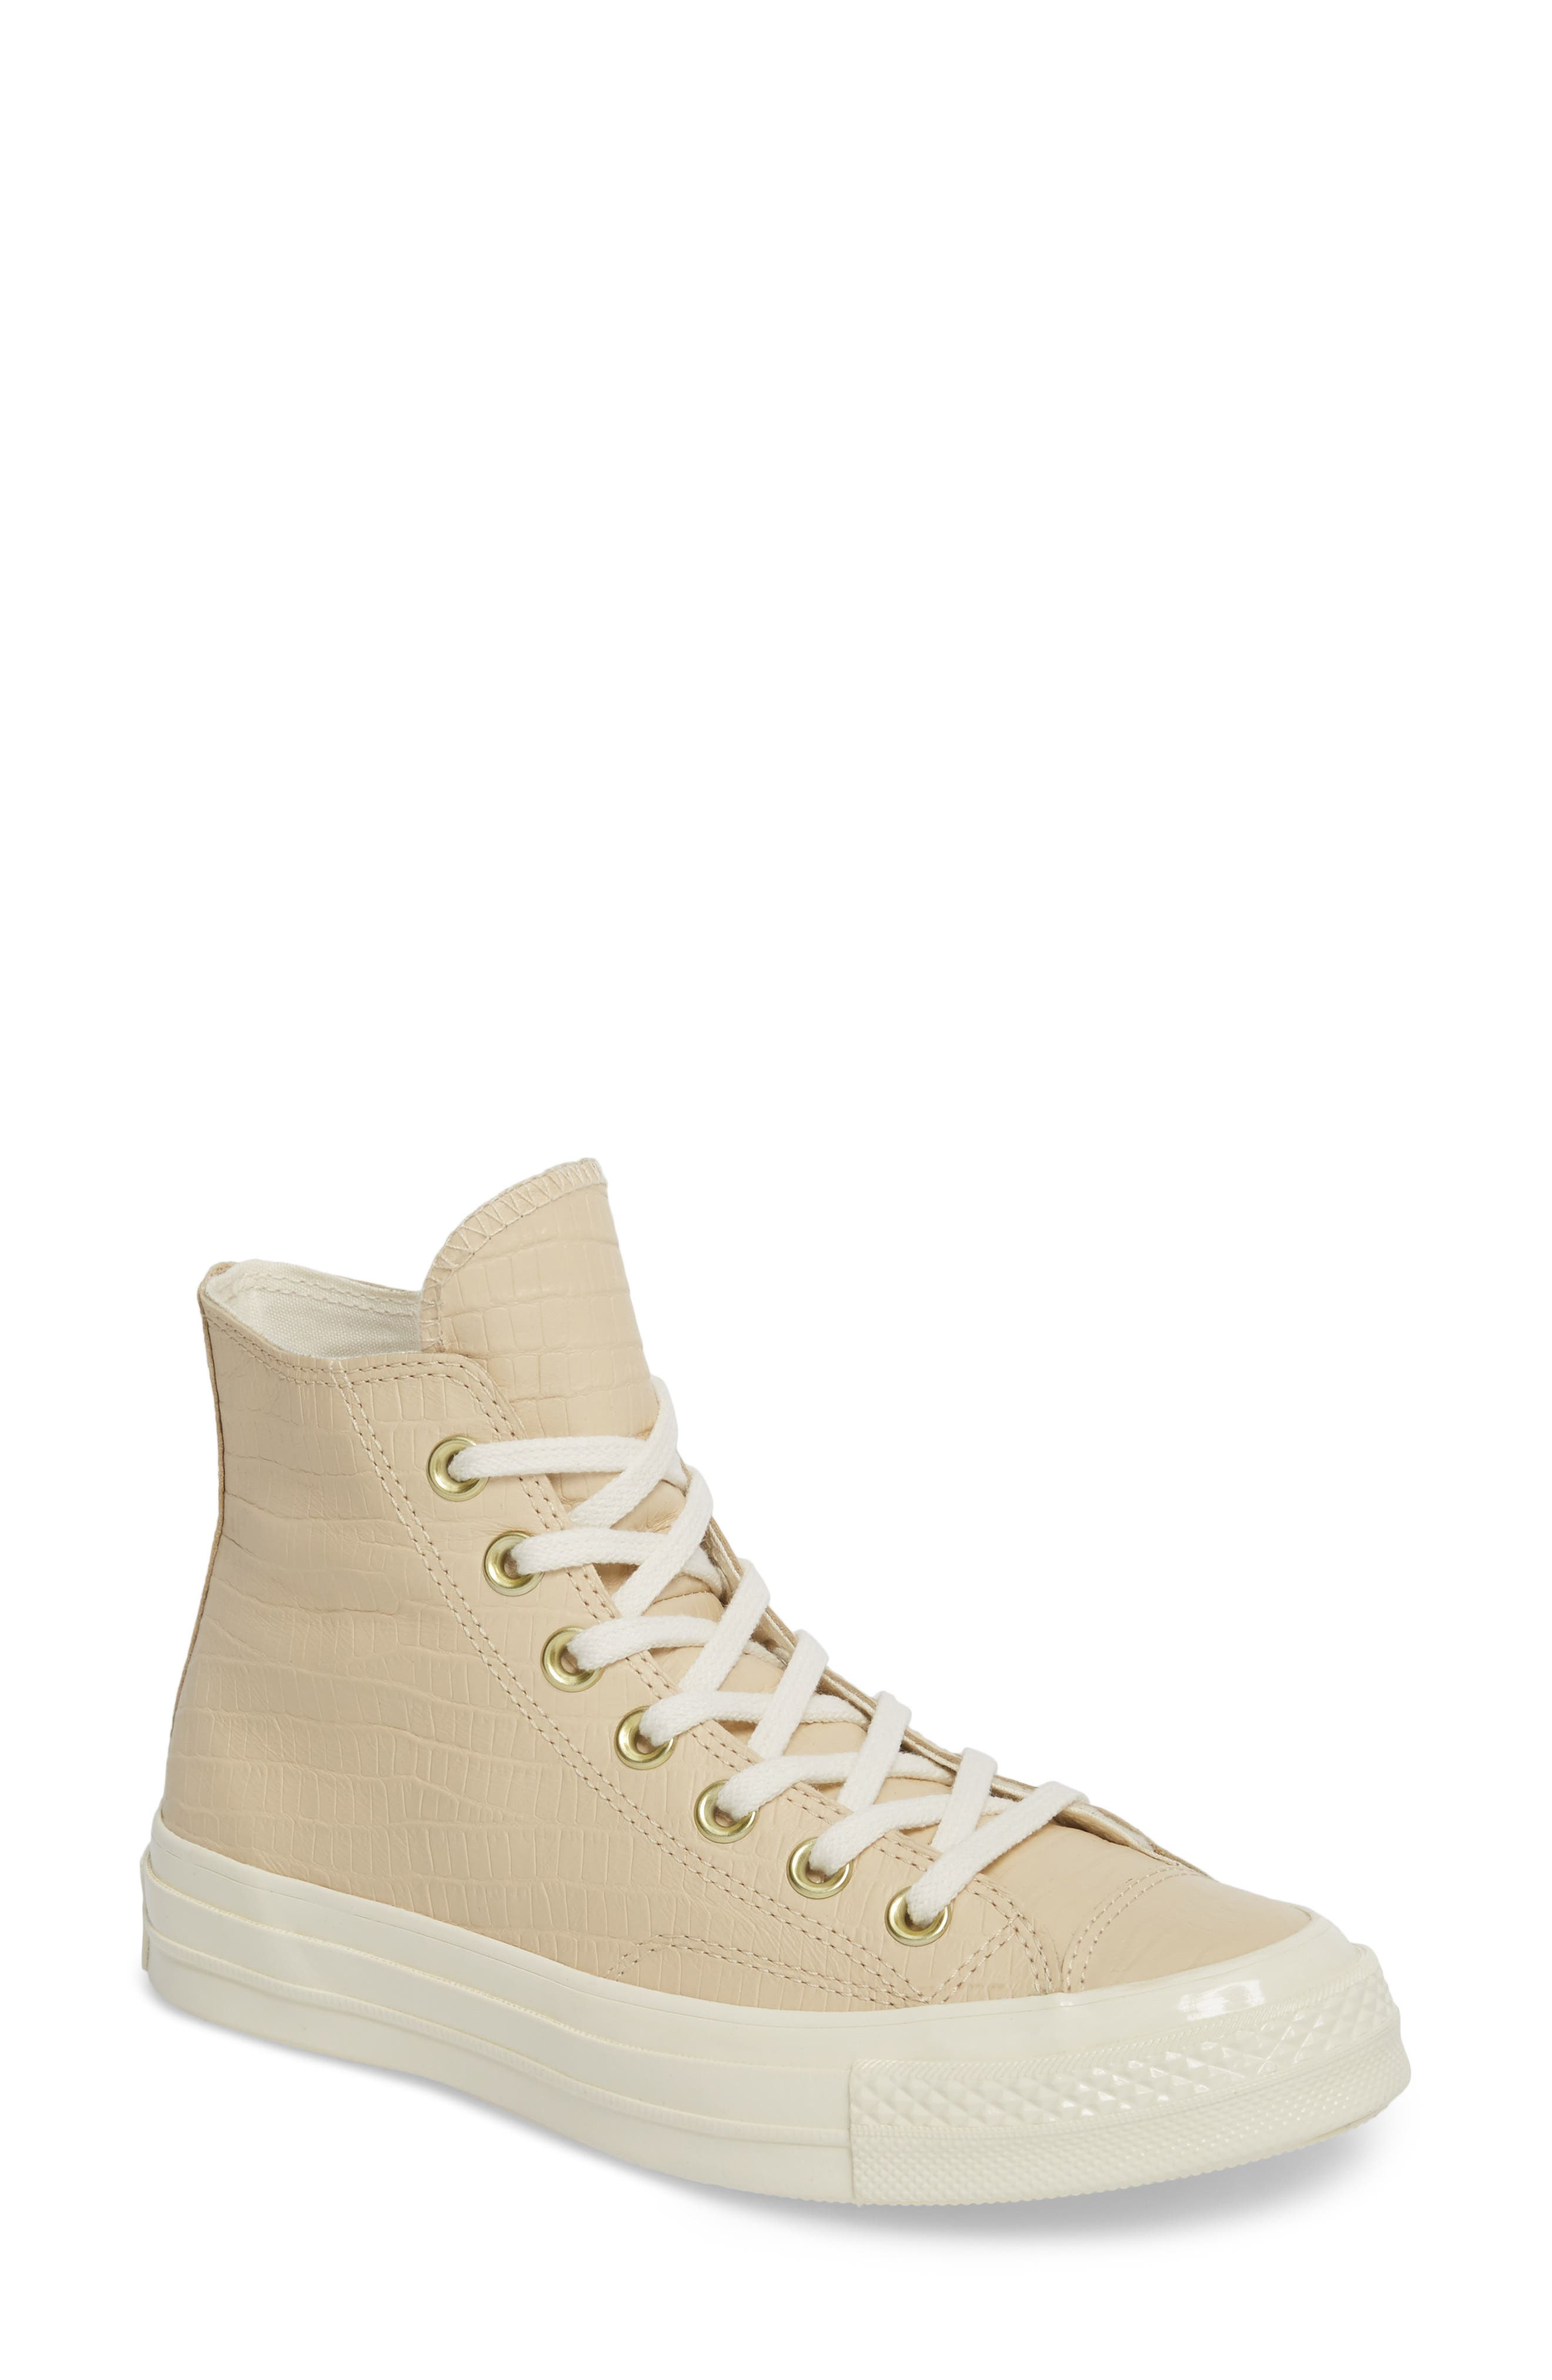 Chuck Taylor<sup>®</sup> All Star<sup>®</sup> CT 70 Reptile High Top Sneaker,                         Main,                         color, Light Twine